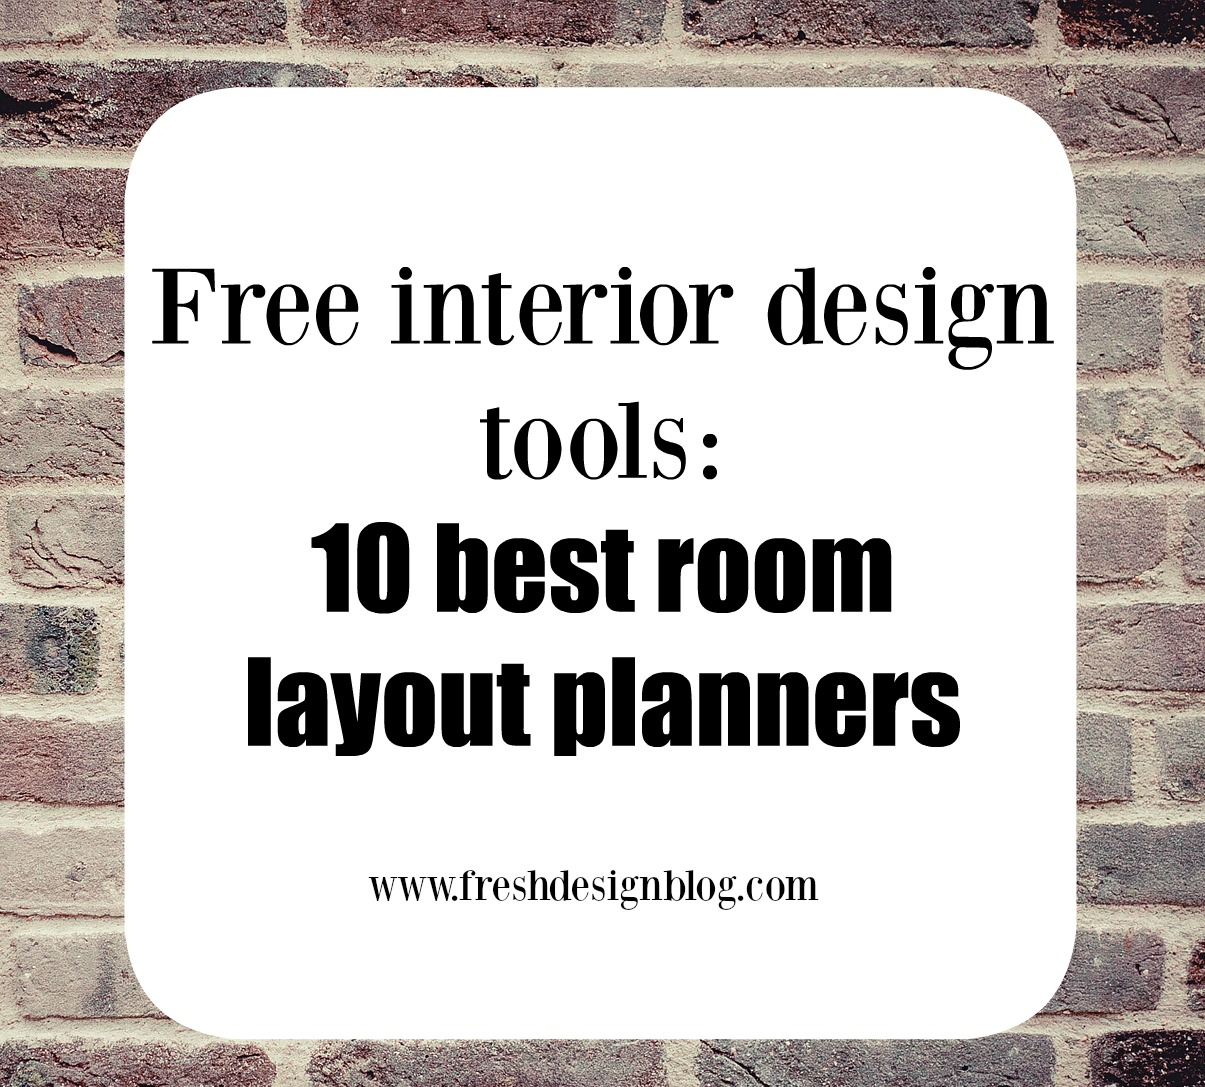 Desktop Interior Design Room Templates For Builder Pc Hd Of The Best Online Layout Planner Tools